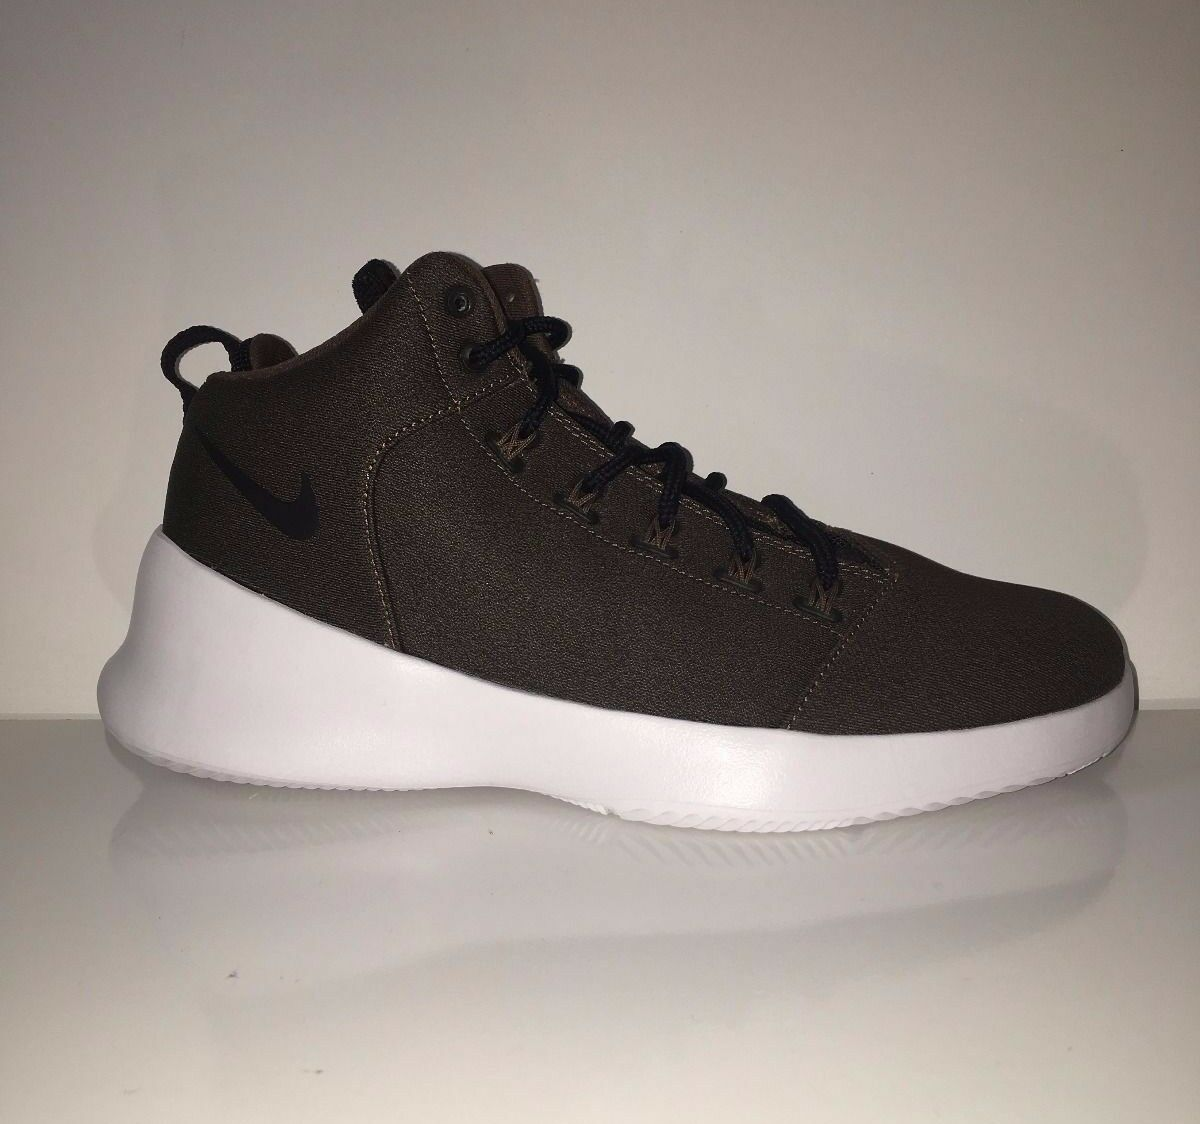 NEW Nike Men's Men's Men's Hyperfr3sh Basketball Khaki 759996-200 Sneakers shoes Sz 7.5 aedd7d